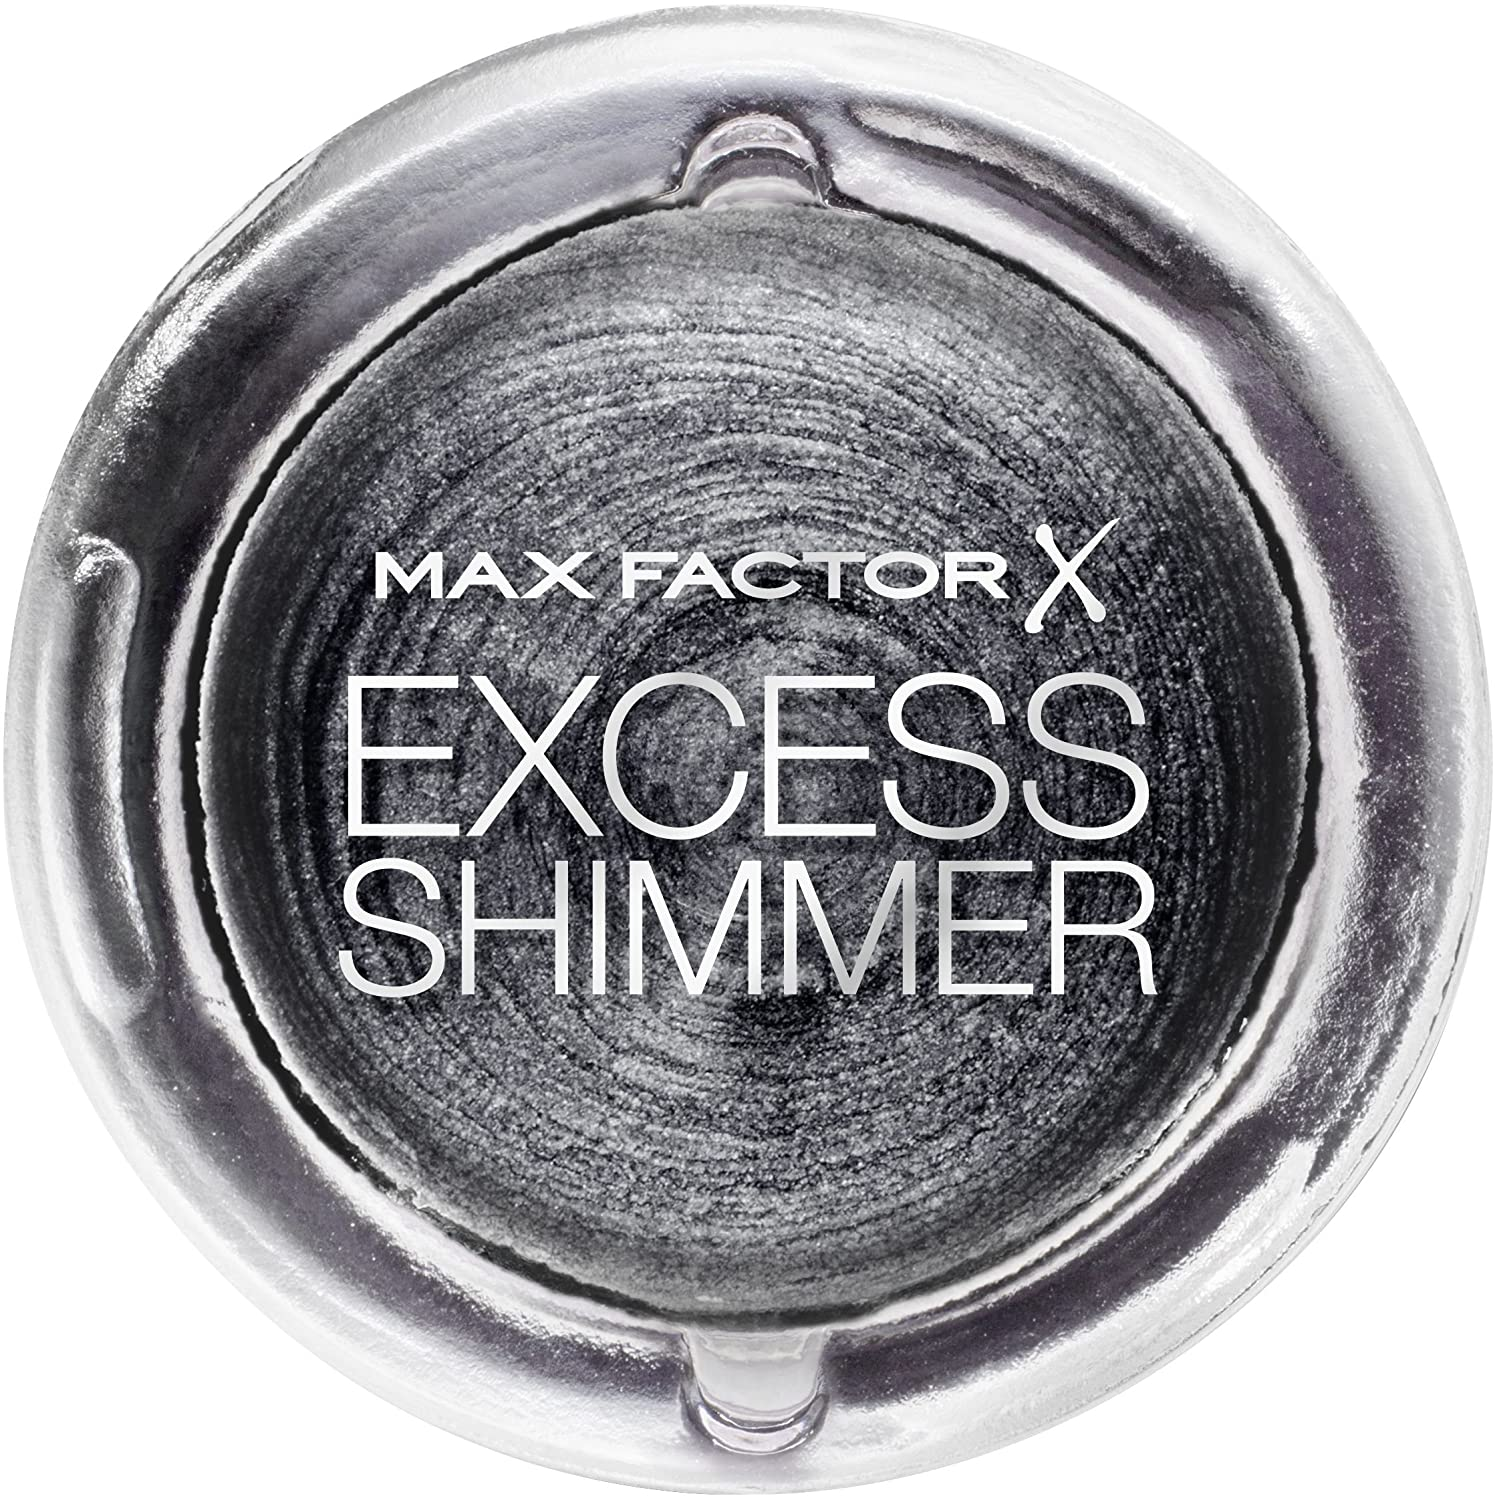 Max Factor Excess shimmer eyeshadow – # 30 onyx by max factor for women – 0.24 oz eyeshadow, 0.24 Ounce